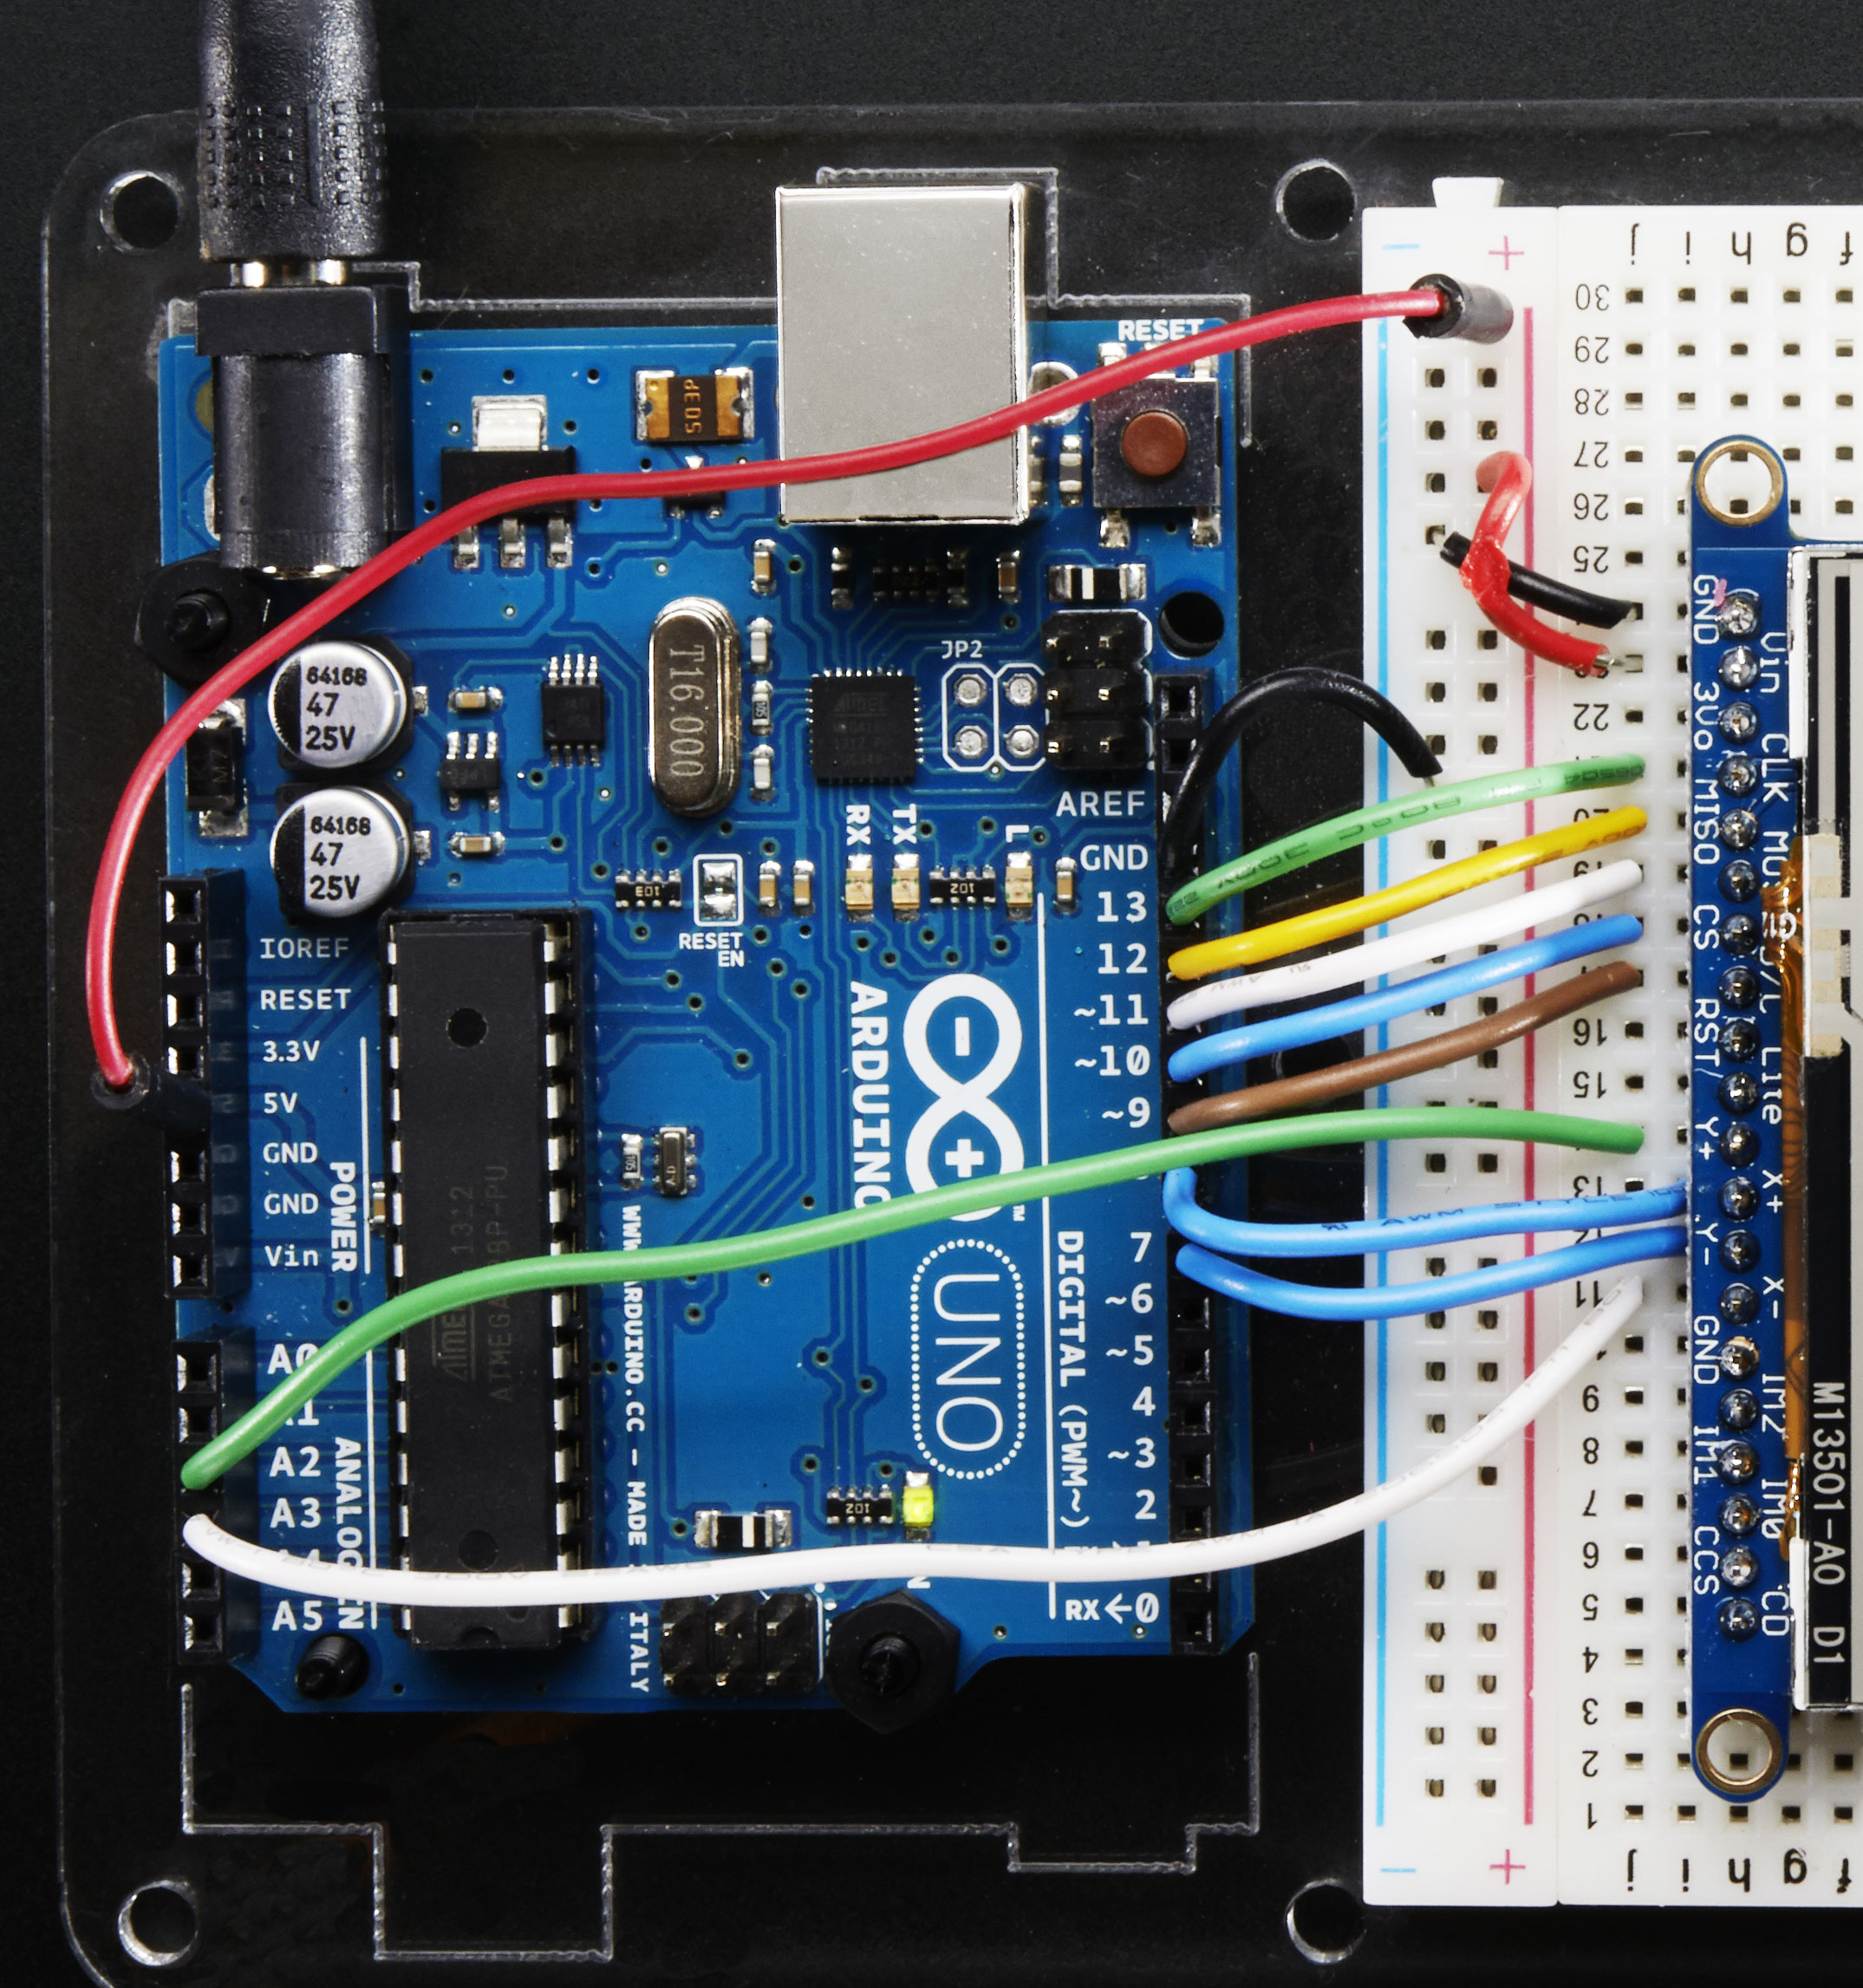 adafruit_products_touchwiring.jpg